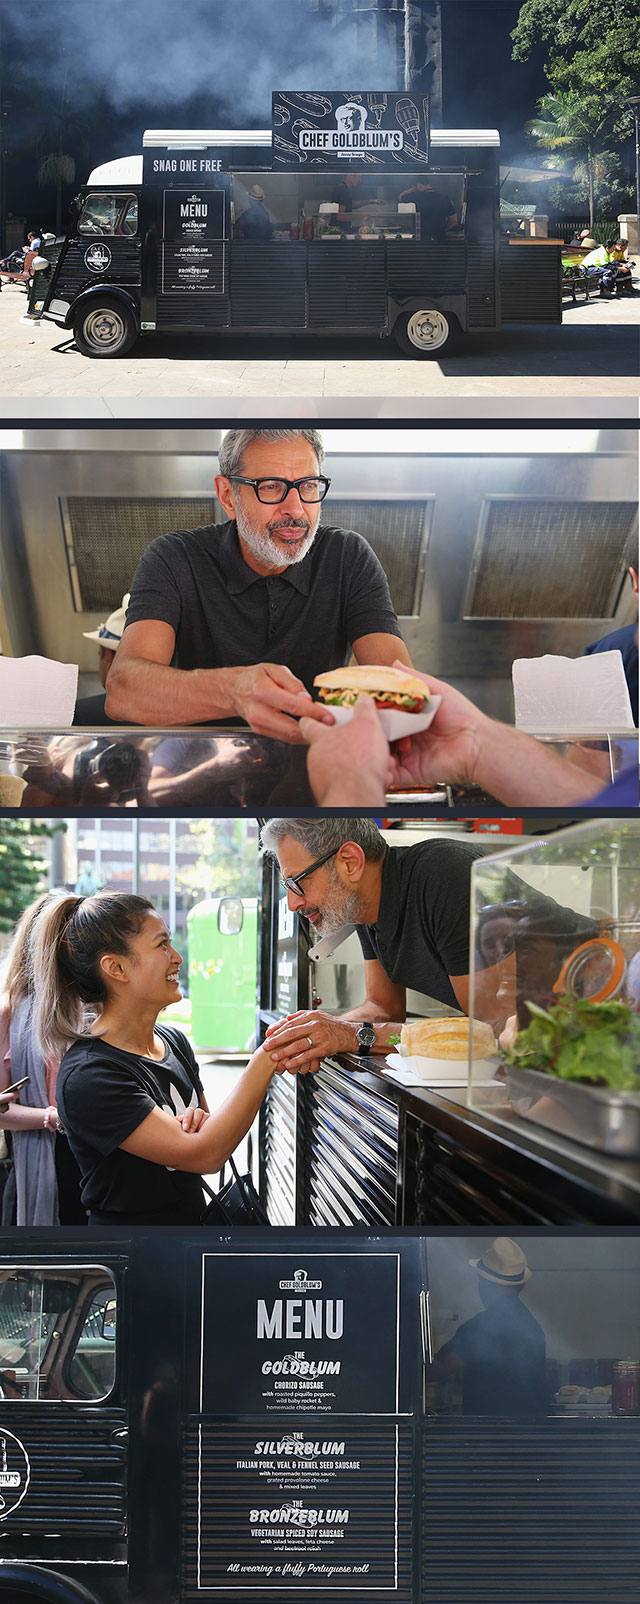 foodtruck jeff goldblum 2017